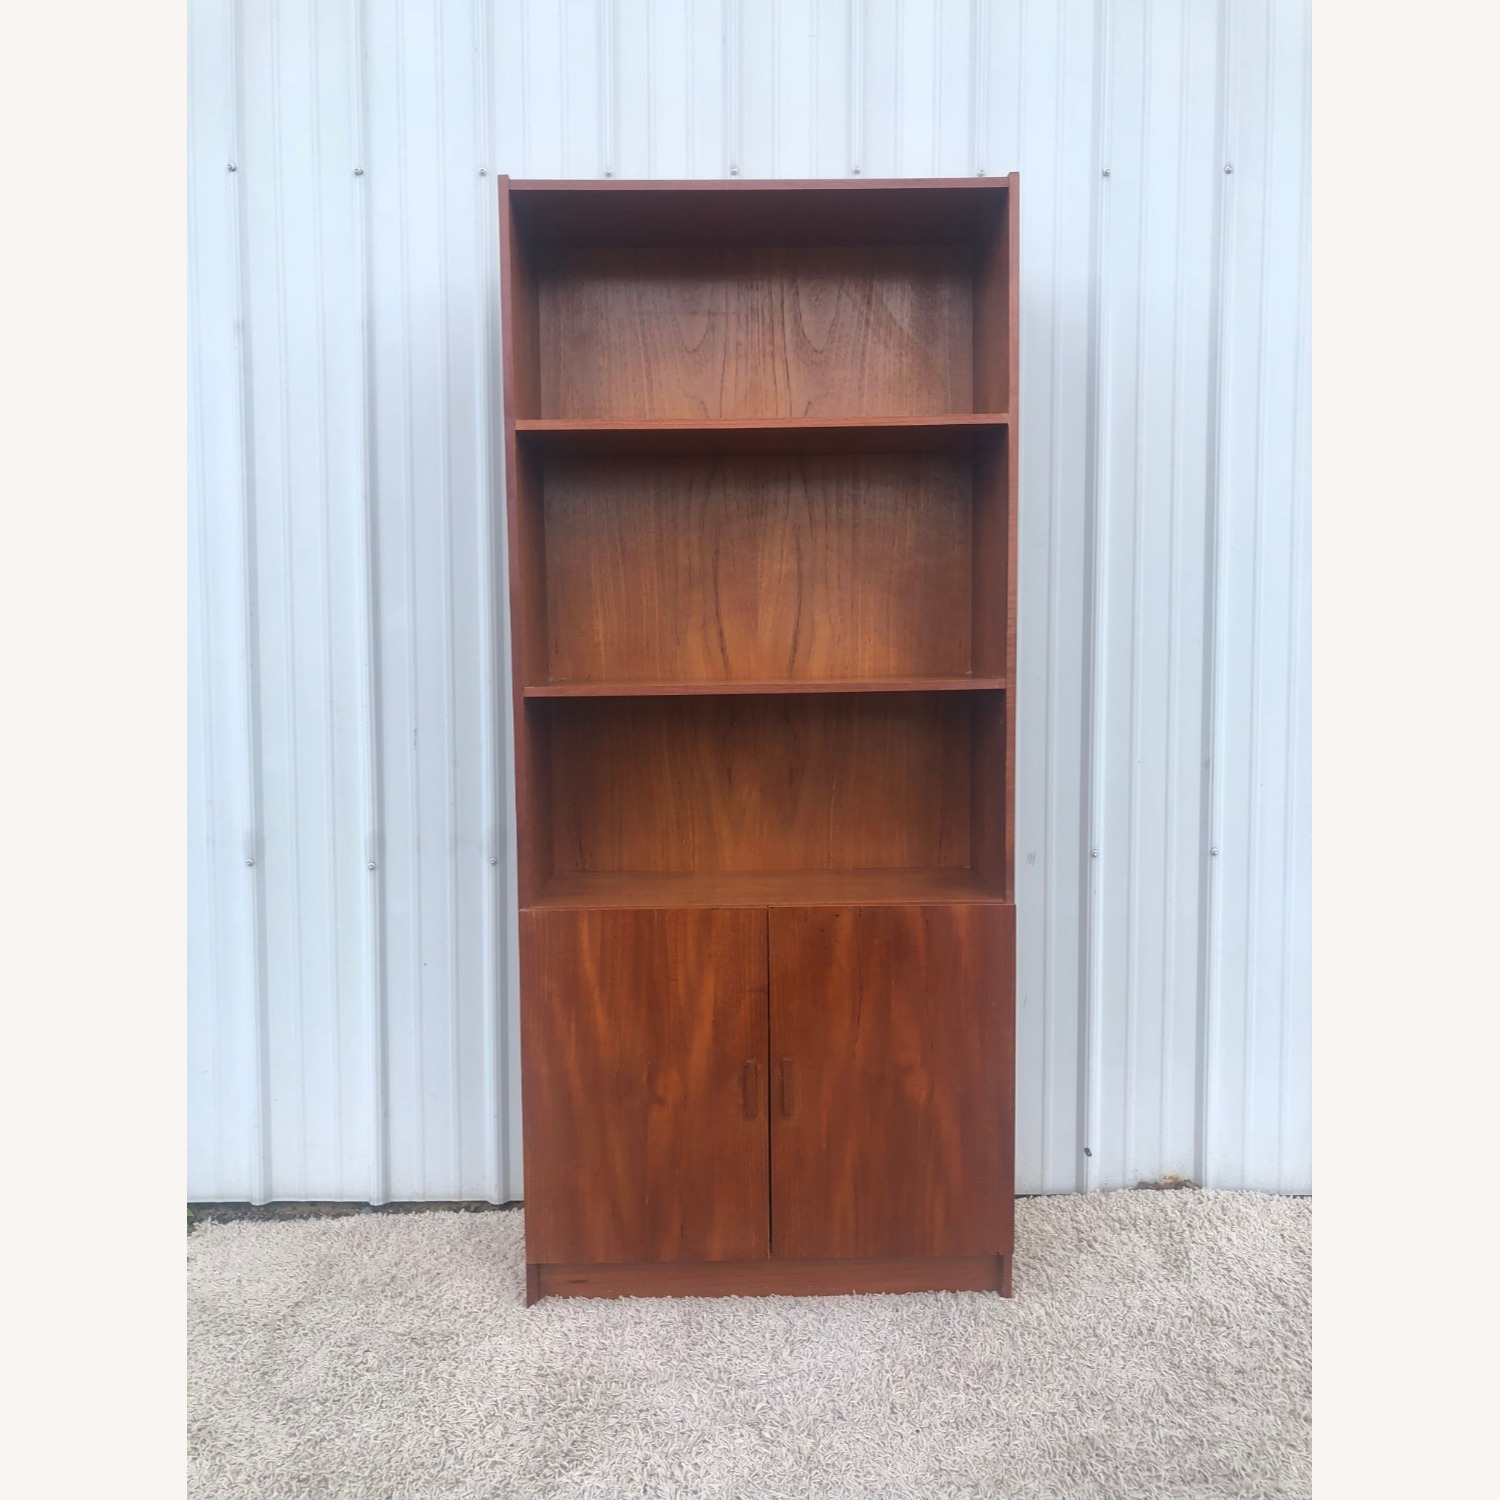 Danish Modern Teak Shelving with Cabinet - image-12